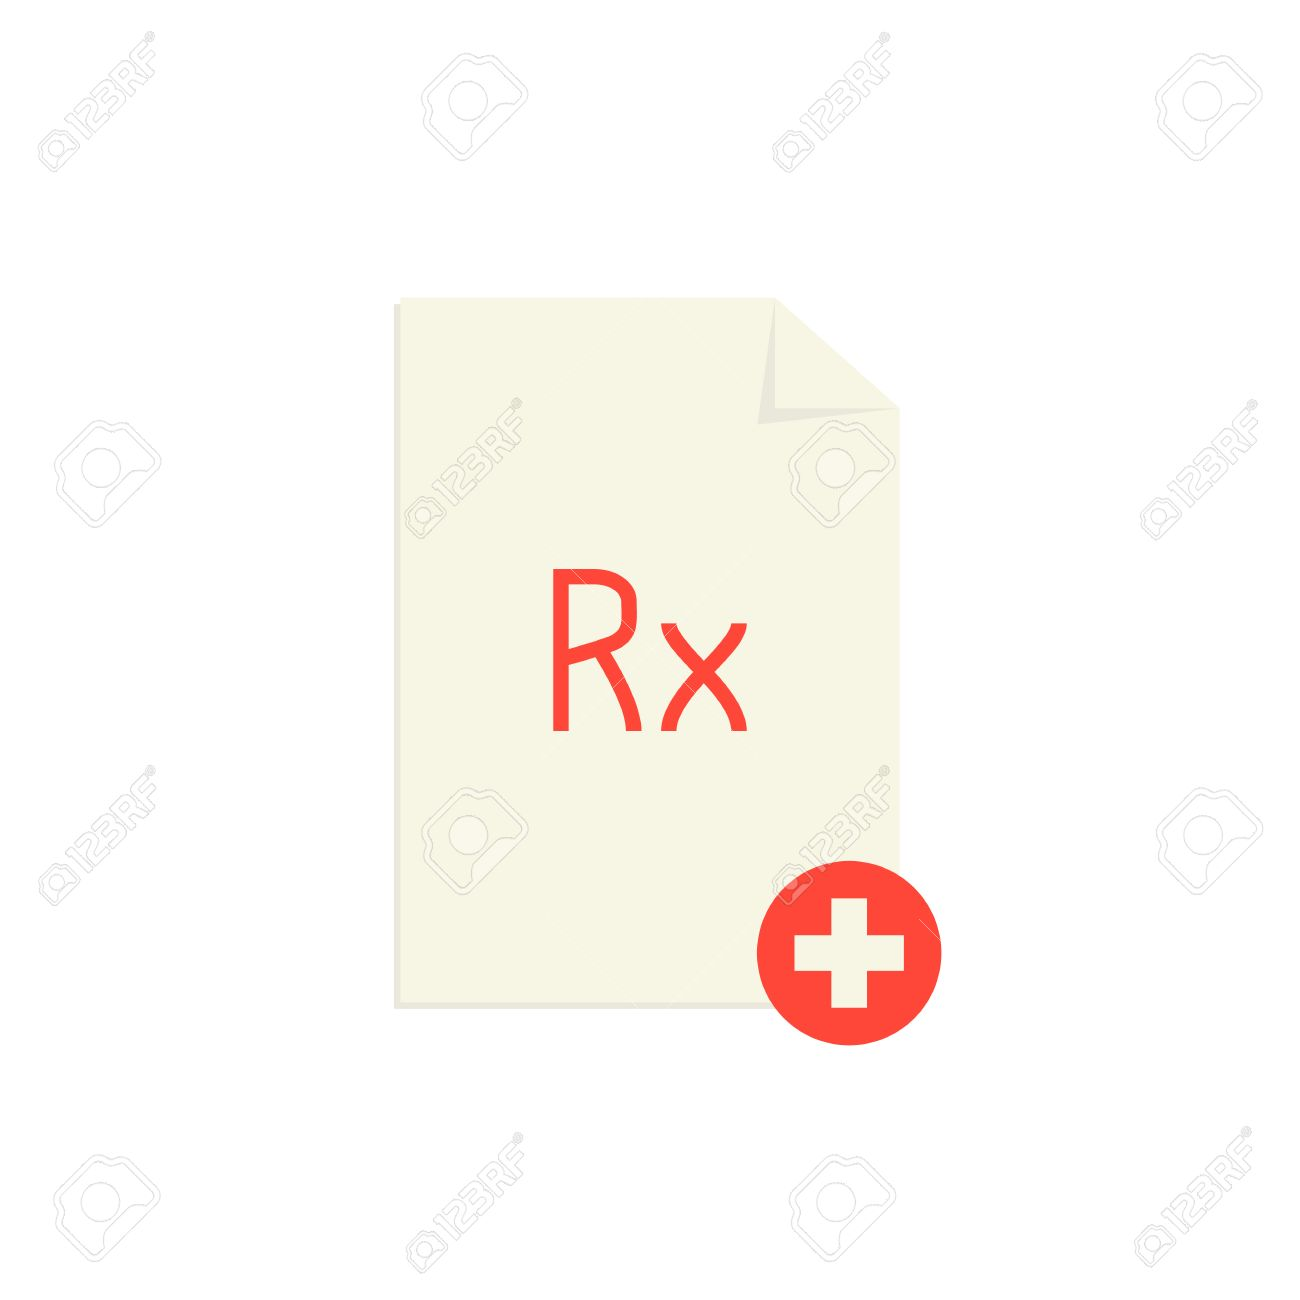 Medical Prescription With Red Rx Symbol And Cross Concept Of